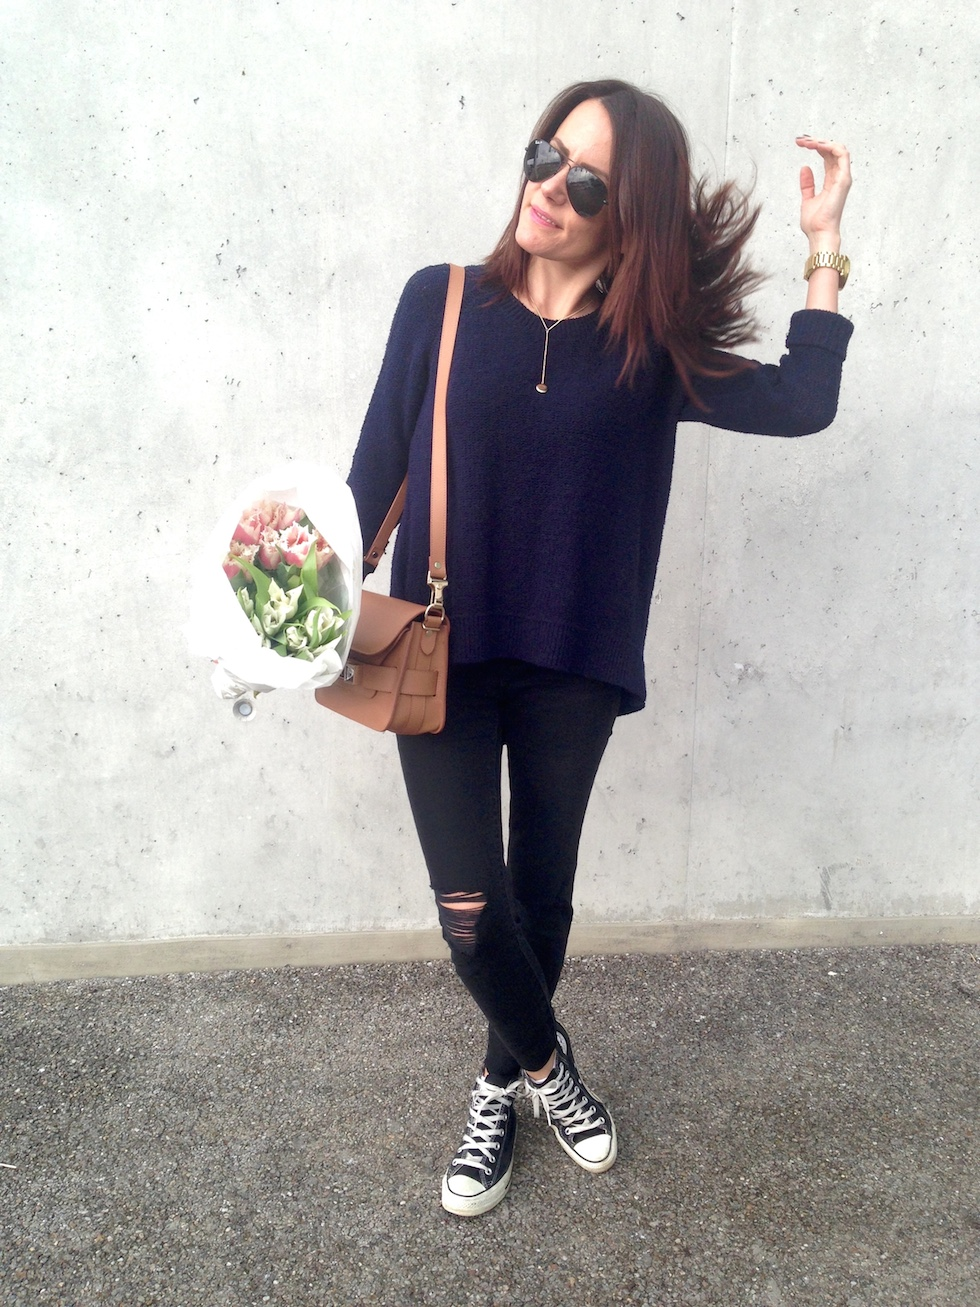 4_Ripped Jeans kombinieren, Madewell Ripped Jeans, PS11 proenza schouler itbag new collection 2015, modeblog luzern